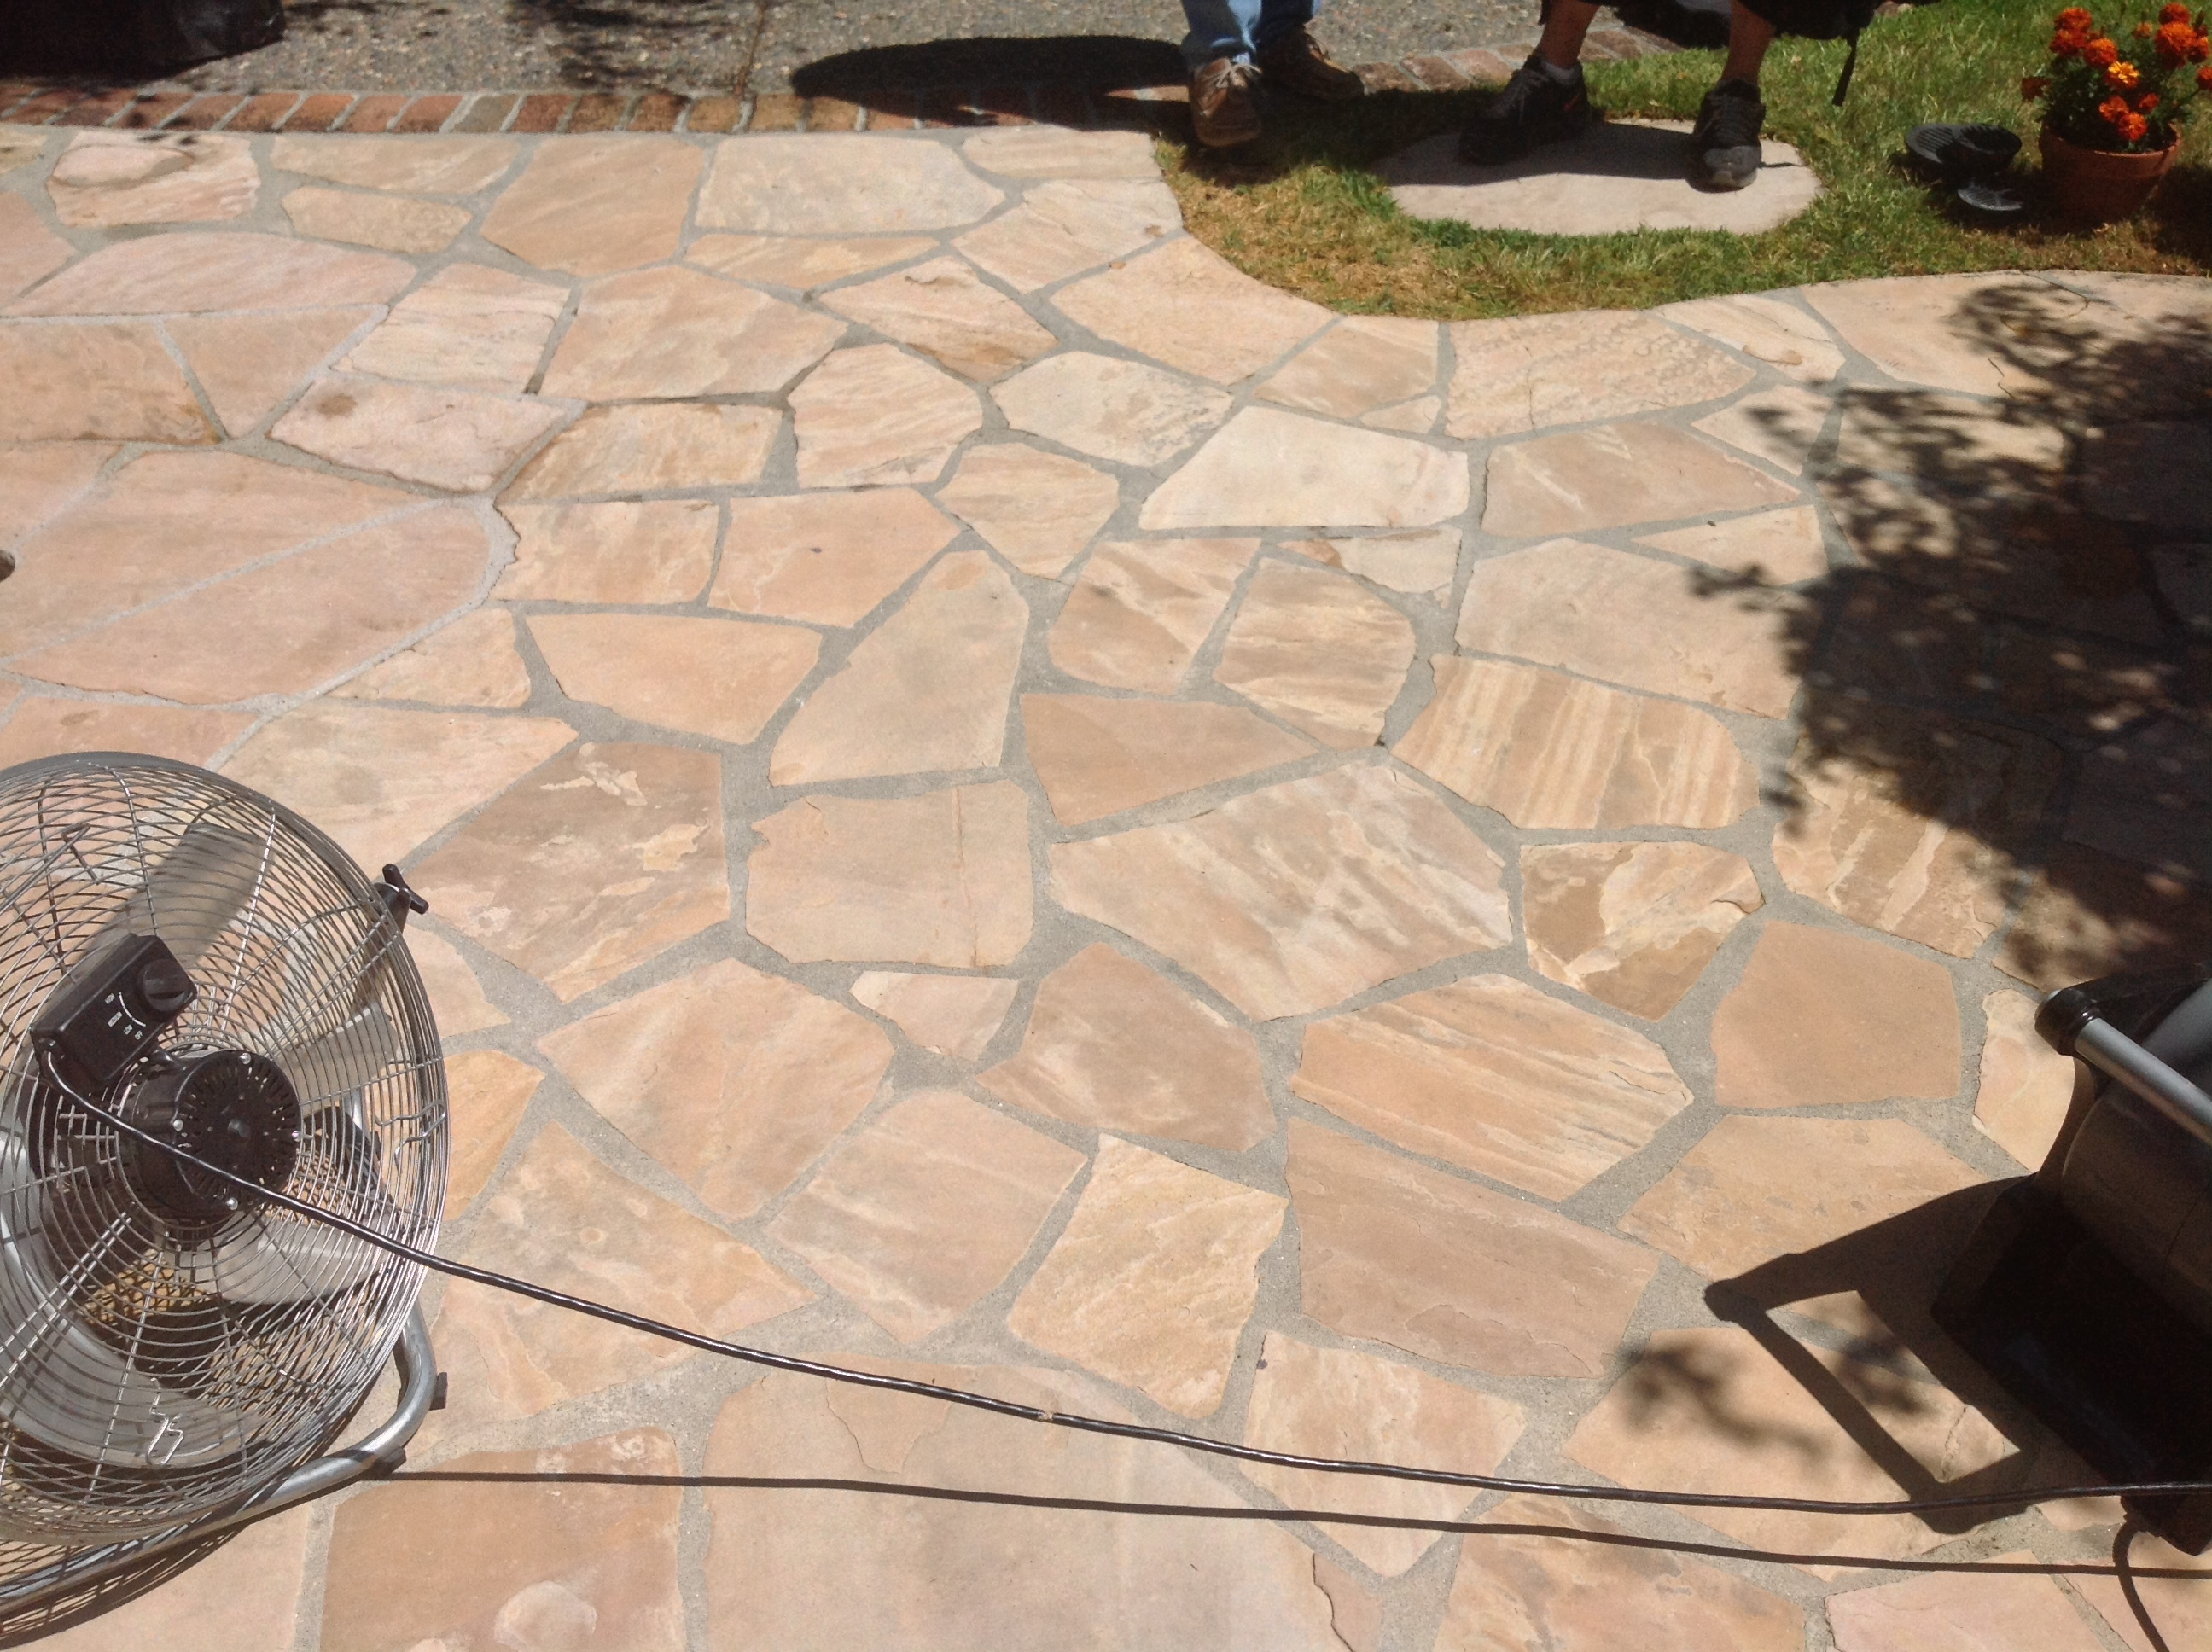 Charmant Flagstone Cleaning Clean Patio Flagstone Clean Grout Patio ...